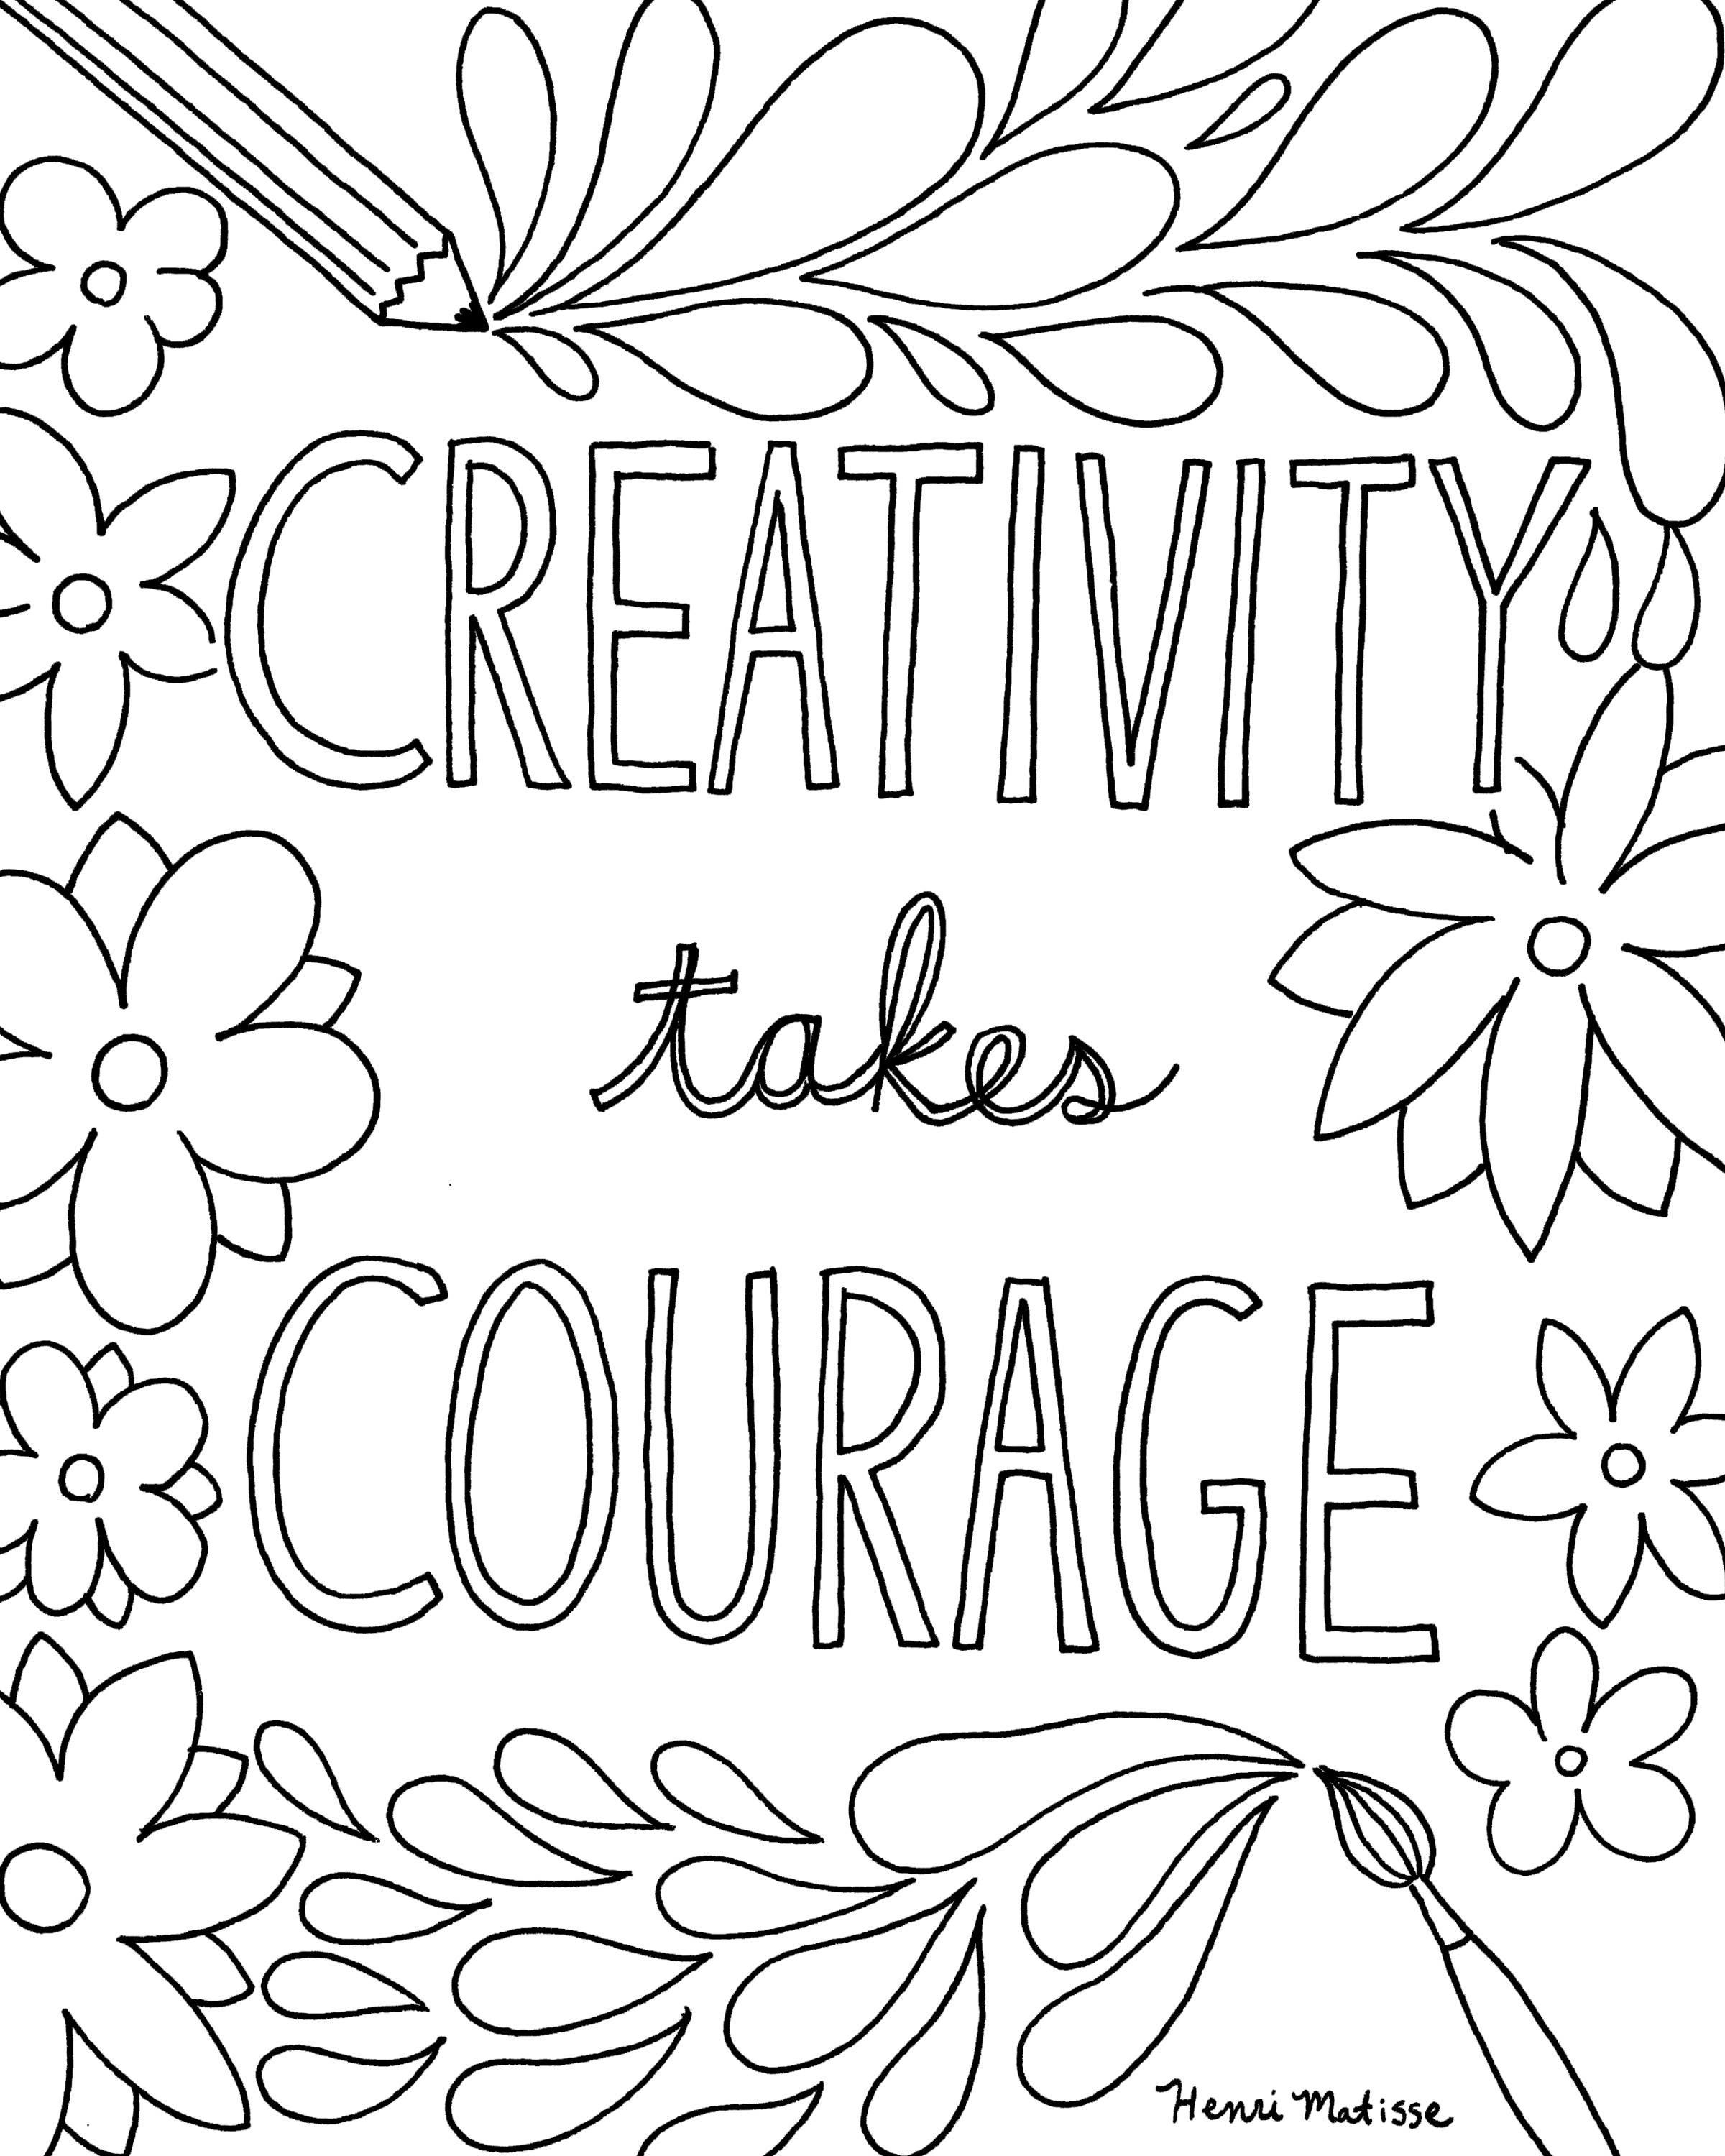 Coloring Book Page Download: Creativity Takes Courage